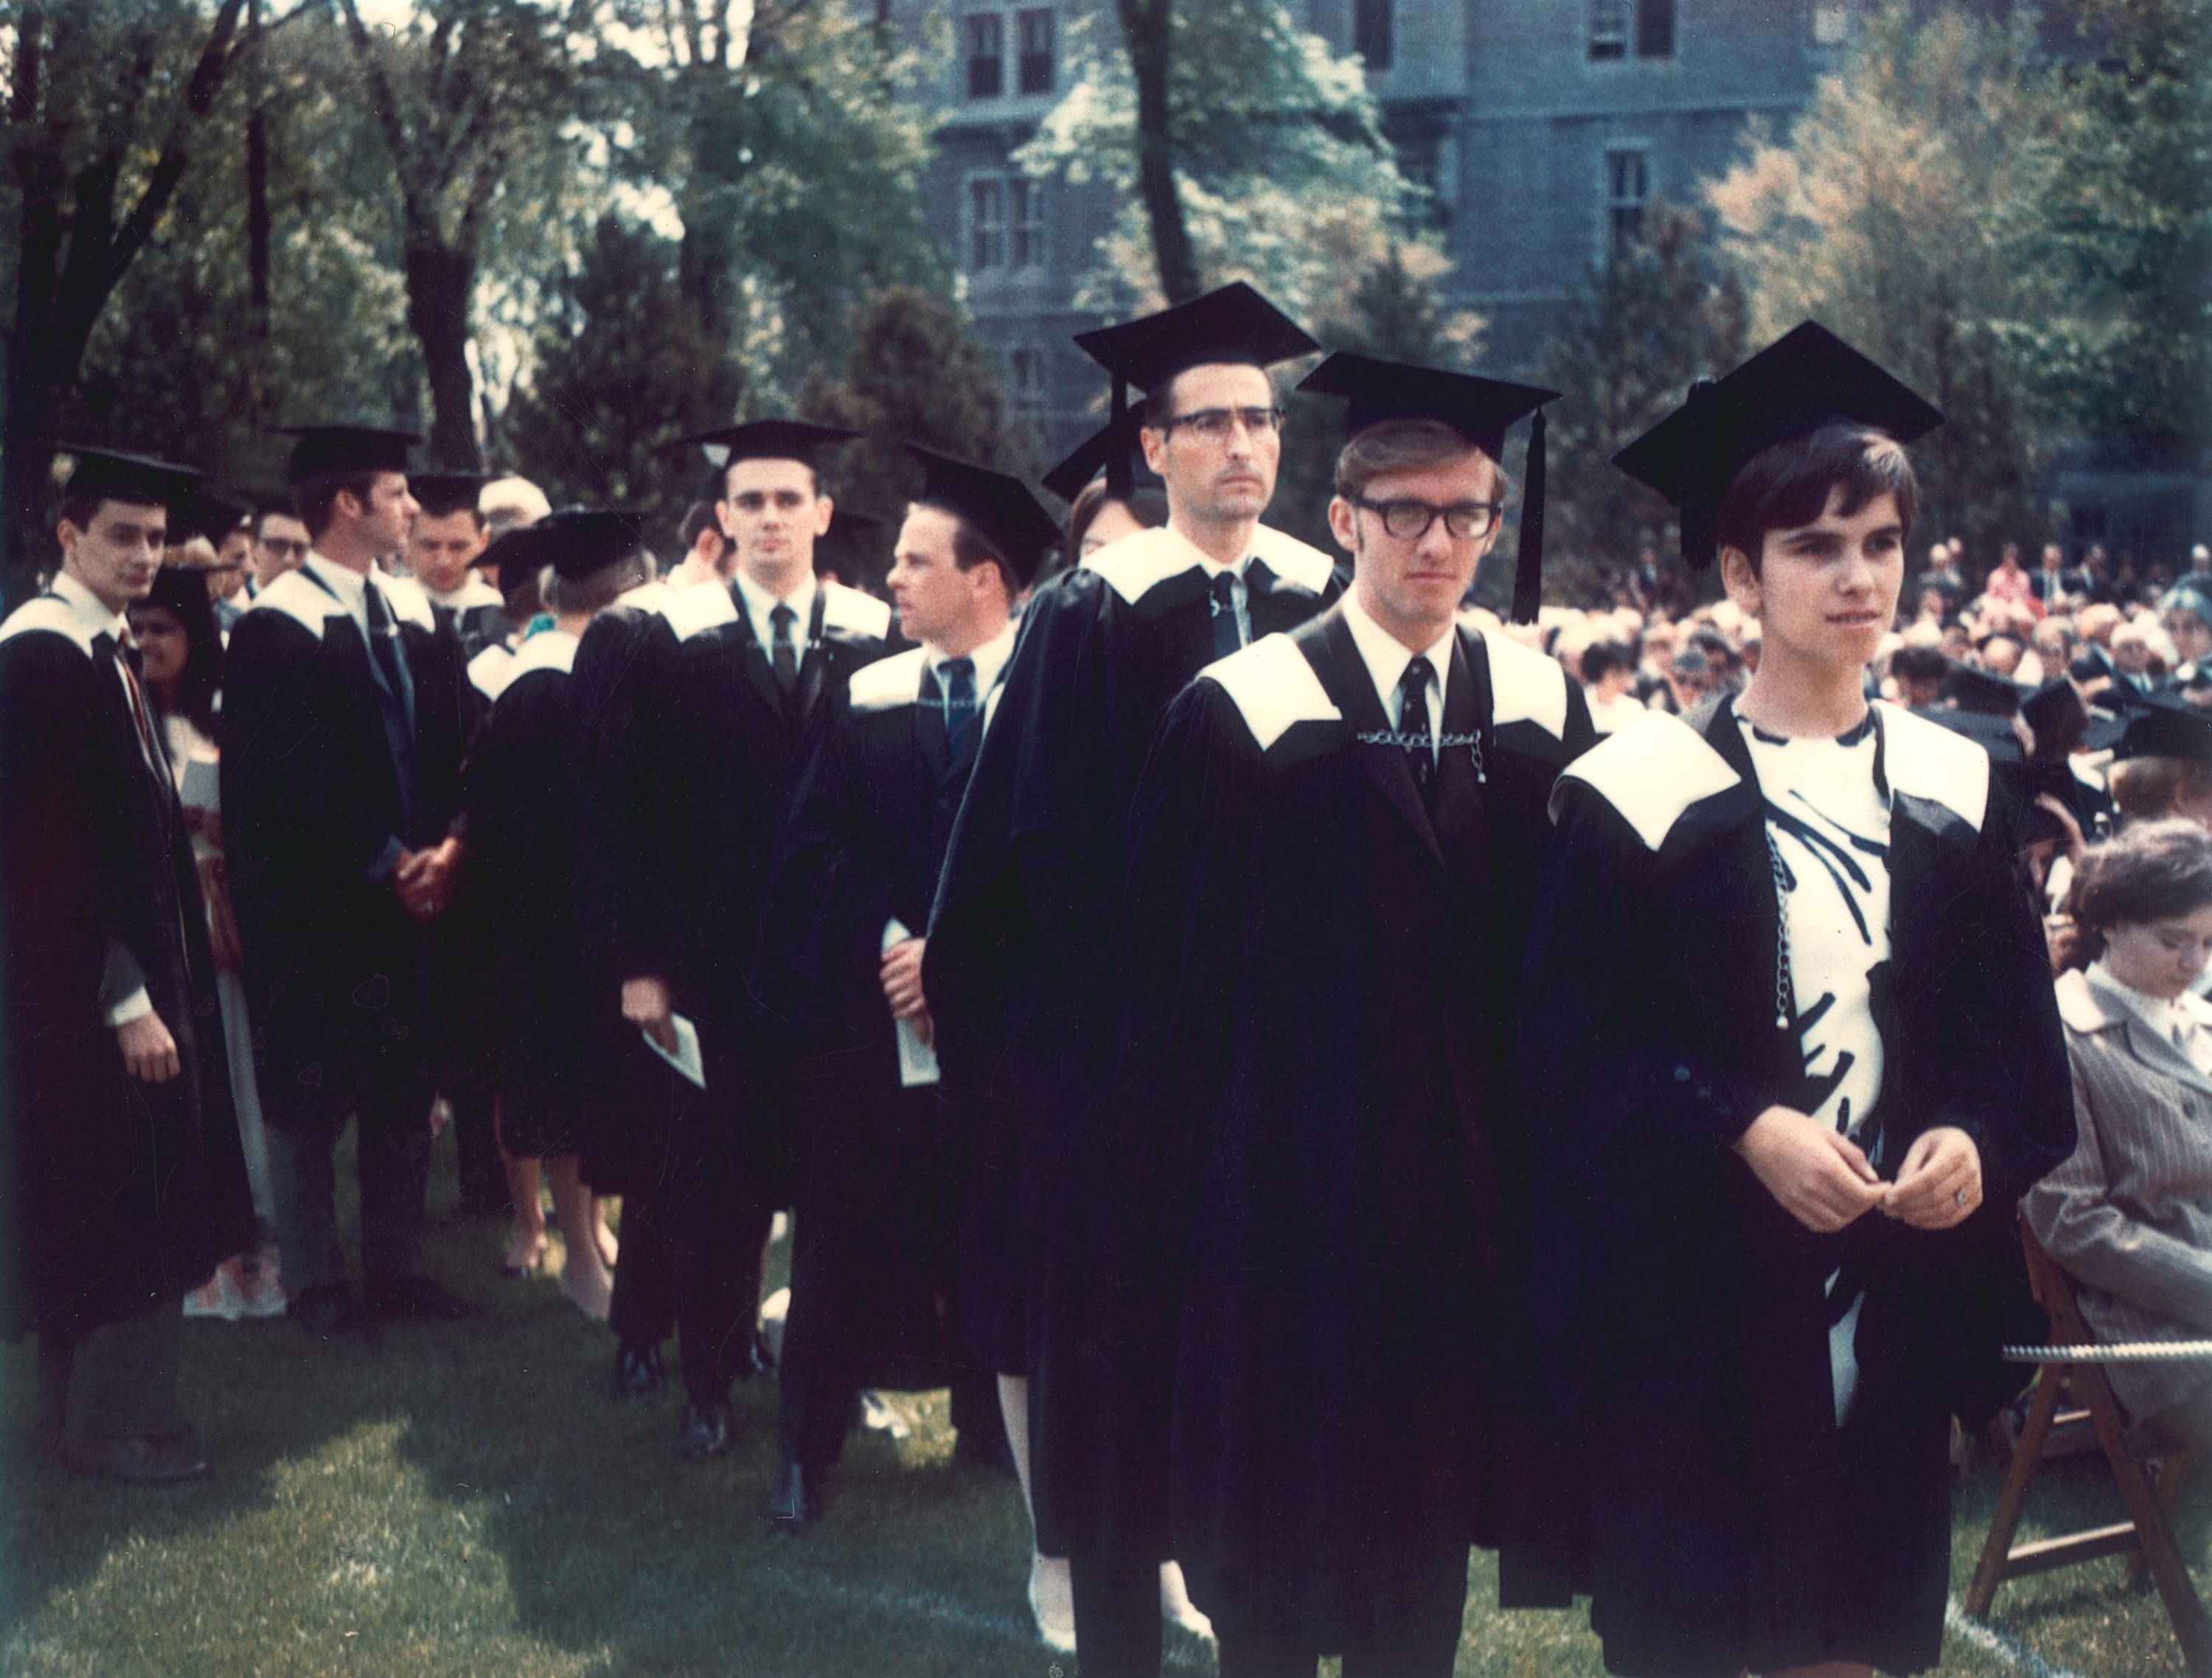 Allan Rock (second from right) at his 1968 graduation from the Faculty of Arts